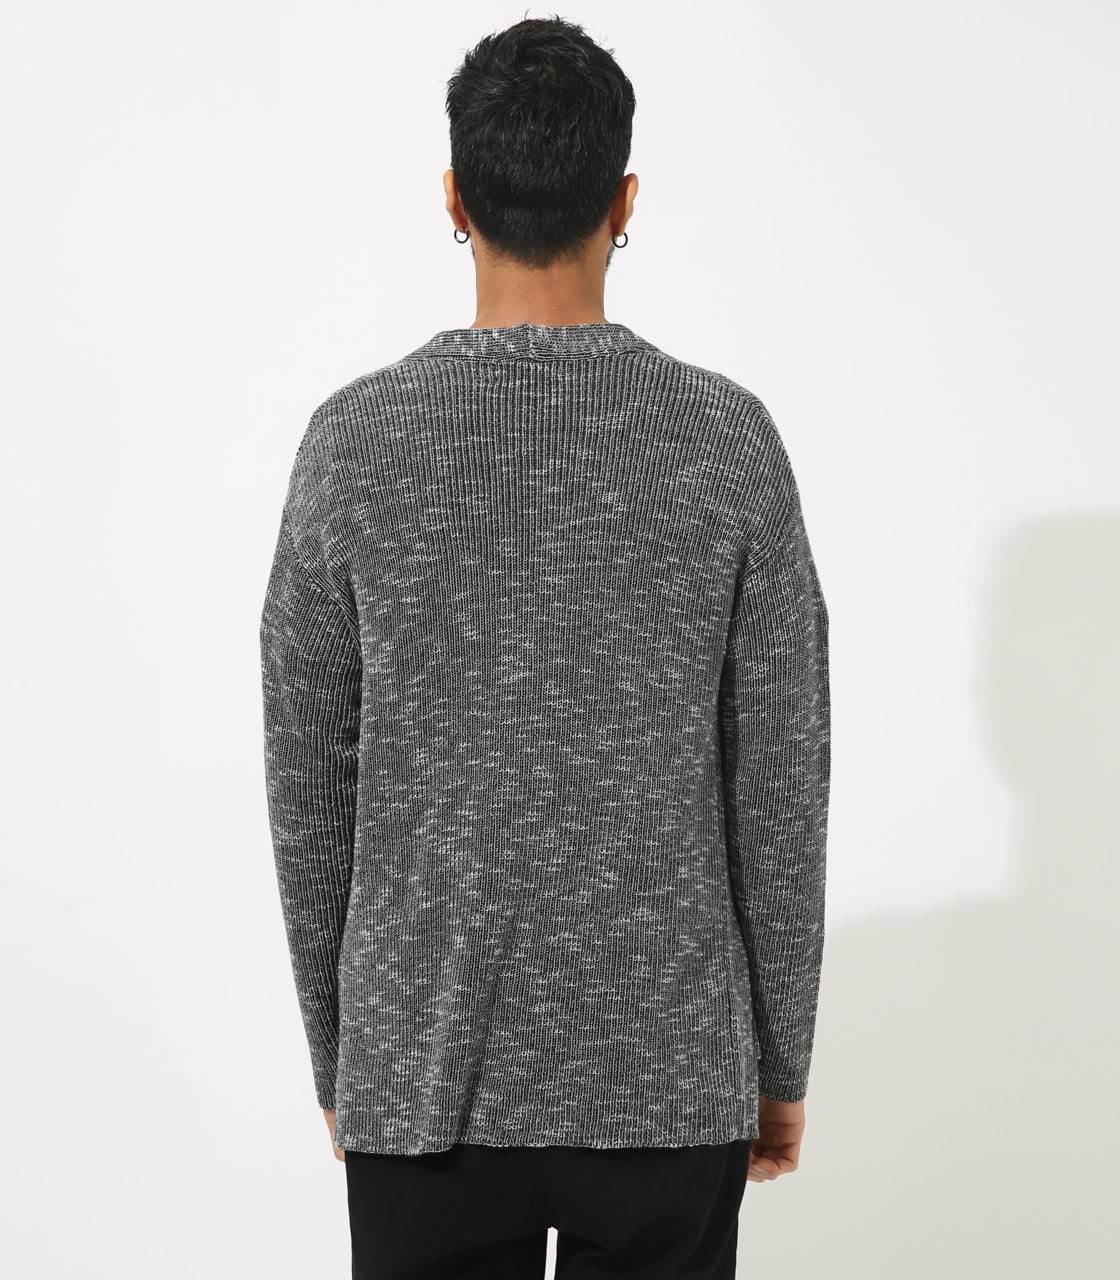 【AZUL BY MOUSSY】RIB STITCH CARDIGAN 詳細画像 柄BLK 7